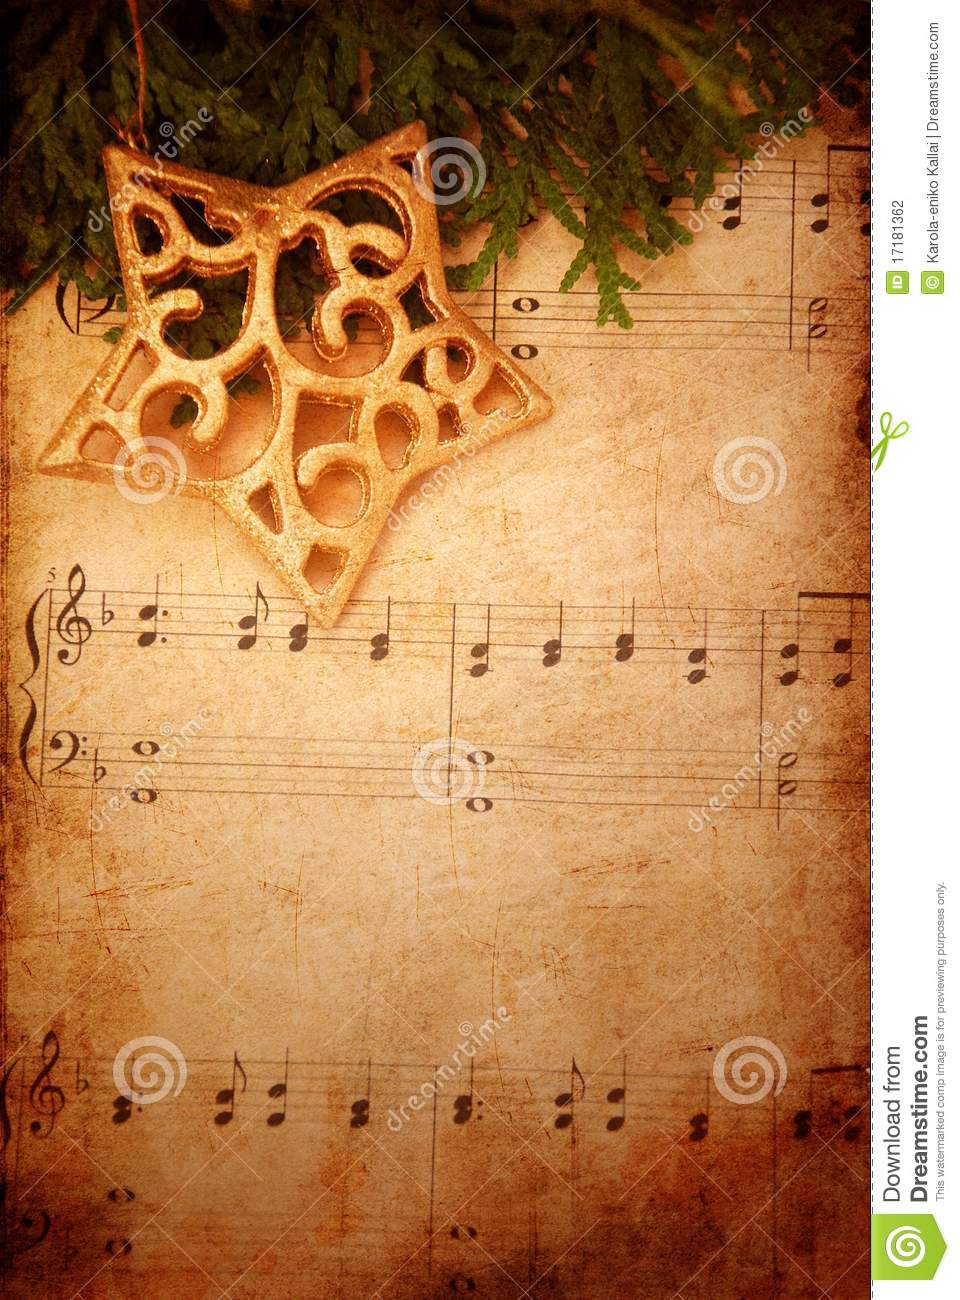 Wallpaper Natal Hd Christmas Background With Old Sheet Music Stock Photo